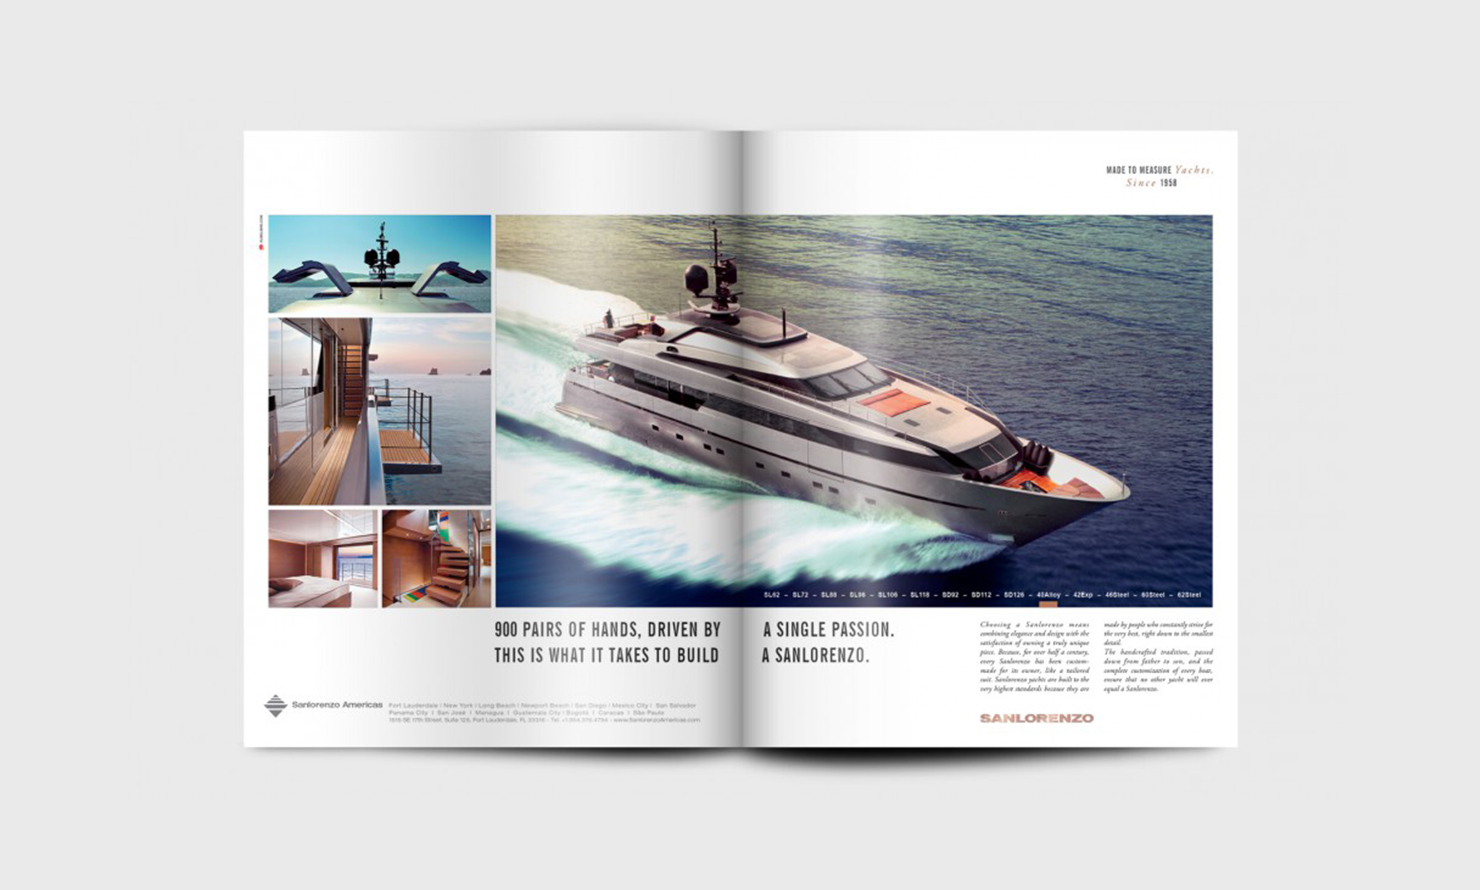 https://www.kubelibre.com/uploads/Slider-work-tutti-clienti/sanlorenzo-yacht-made-to-measure-yacht-since-1958-1.jpg